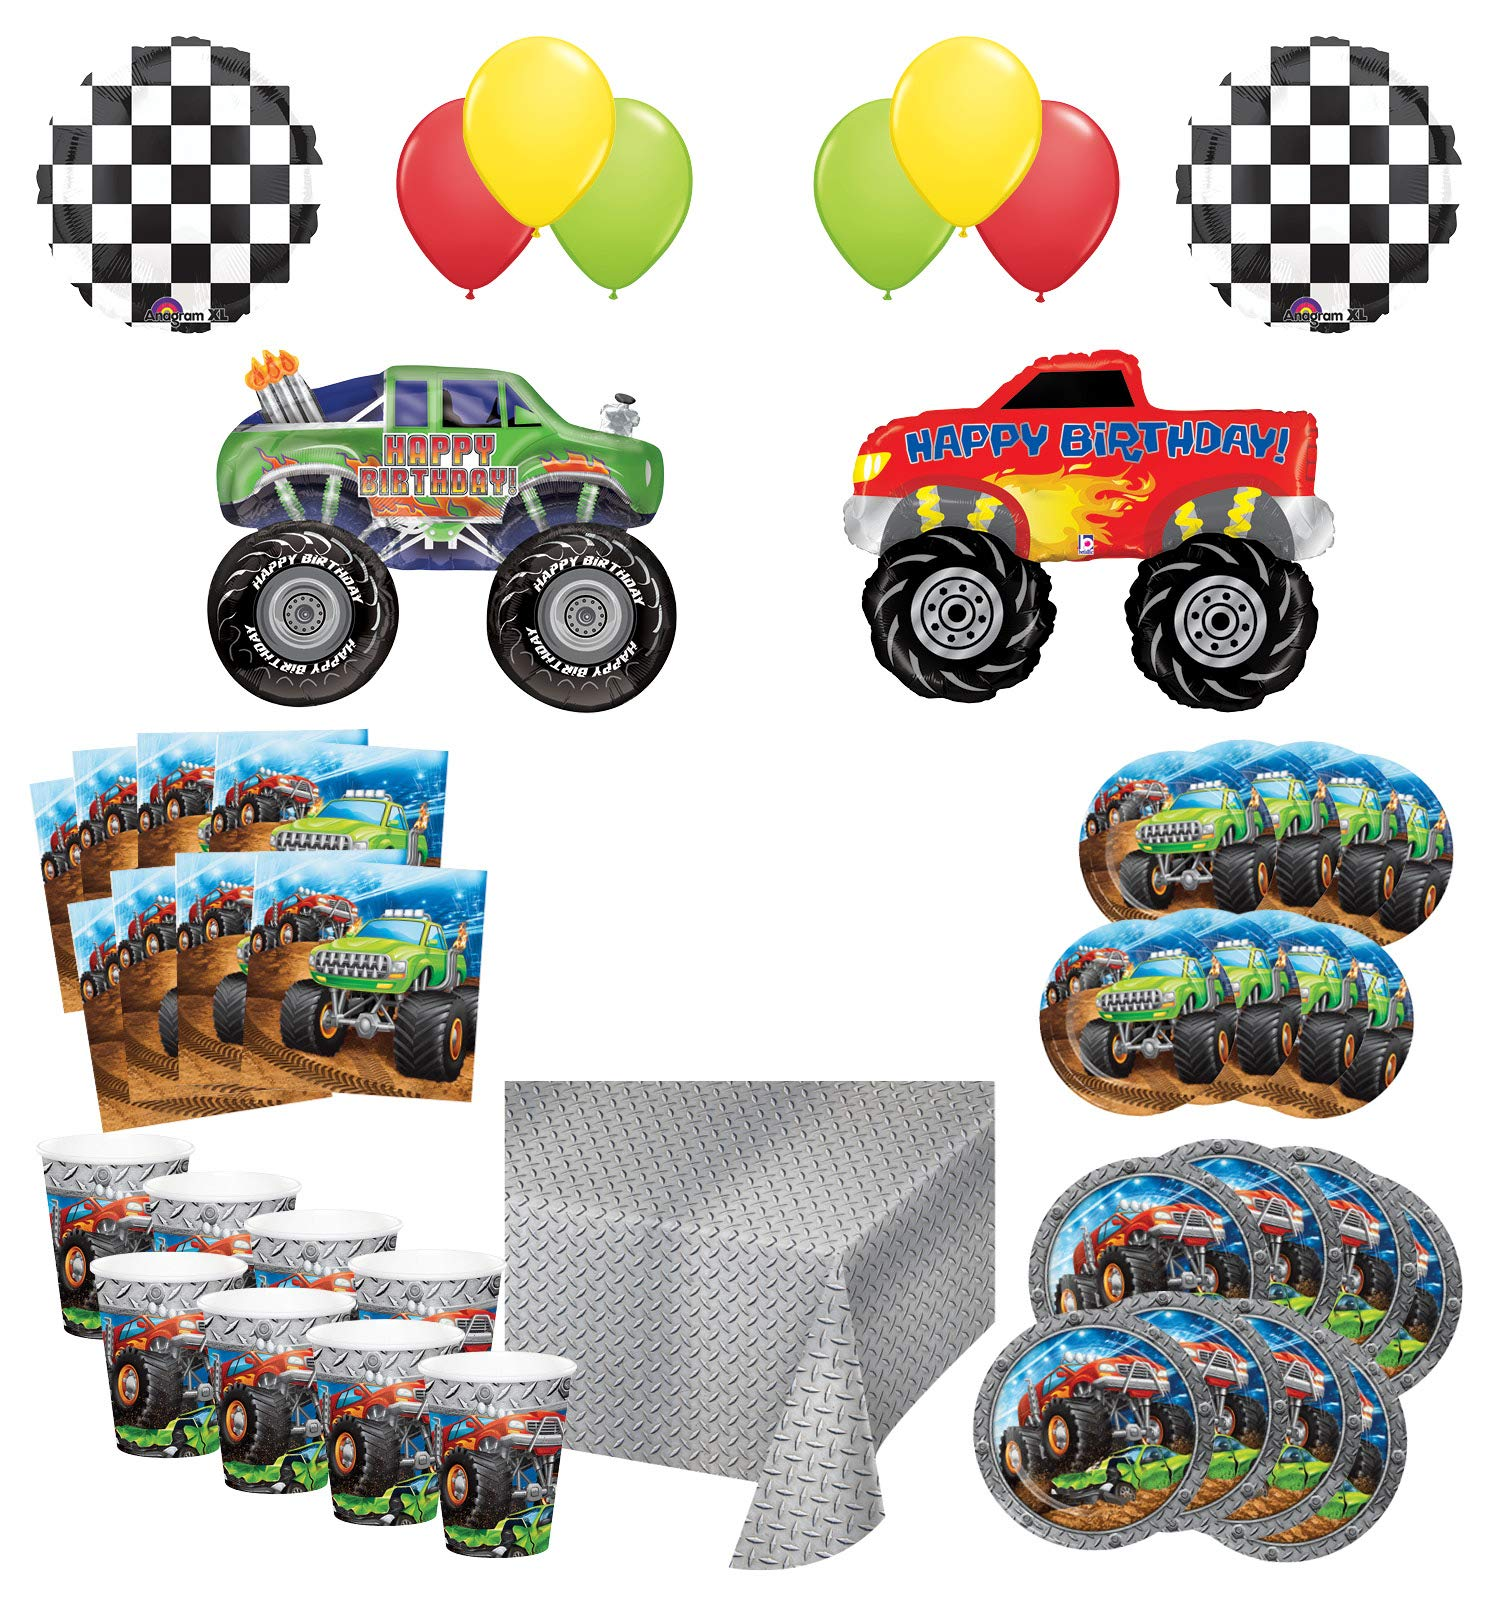 Mayflower Products Monster Truck Rally Birthday Party Supplies 16 Guest Decoration Kit with Green and Red Monster Truck Balloon Bouquet